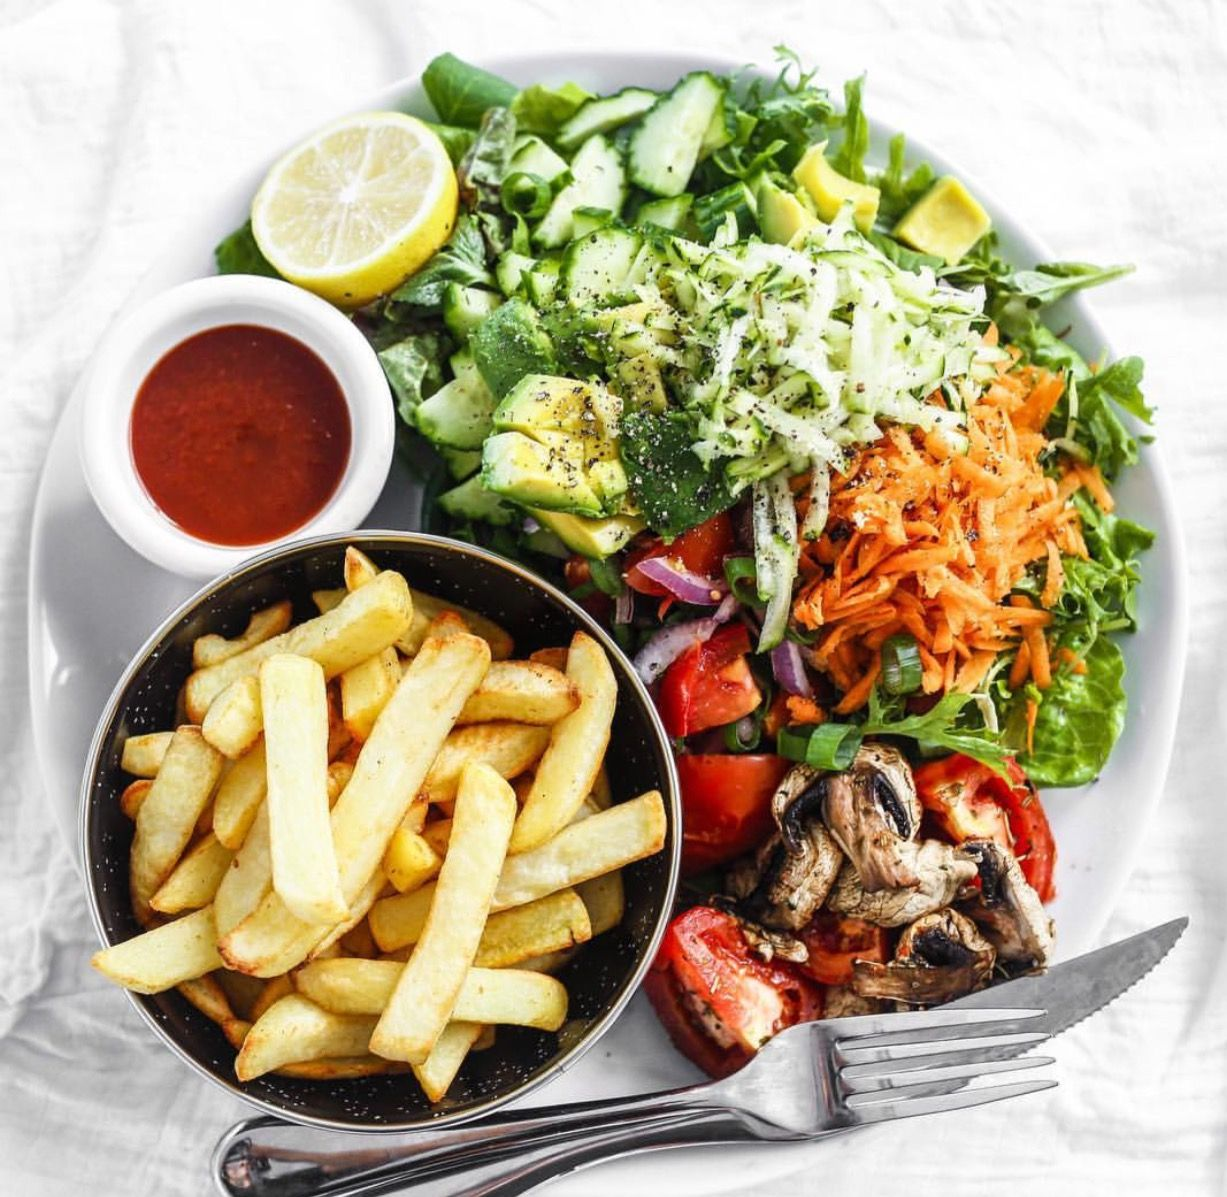 Loni janes version of a pub meal looks absolutely delicious loni janes version of a pub meal looks absolutely delicious https forumfinder Image collections